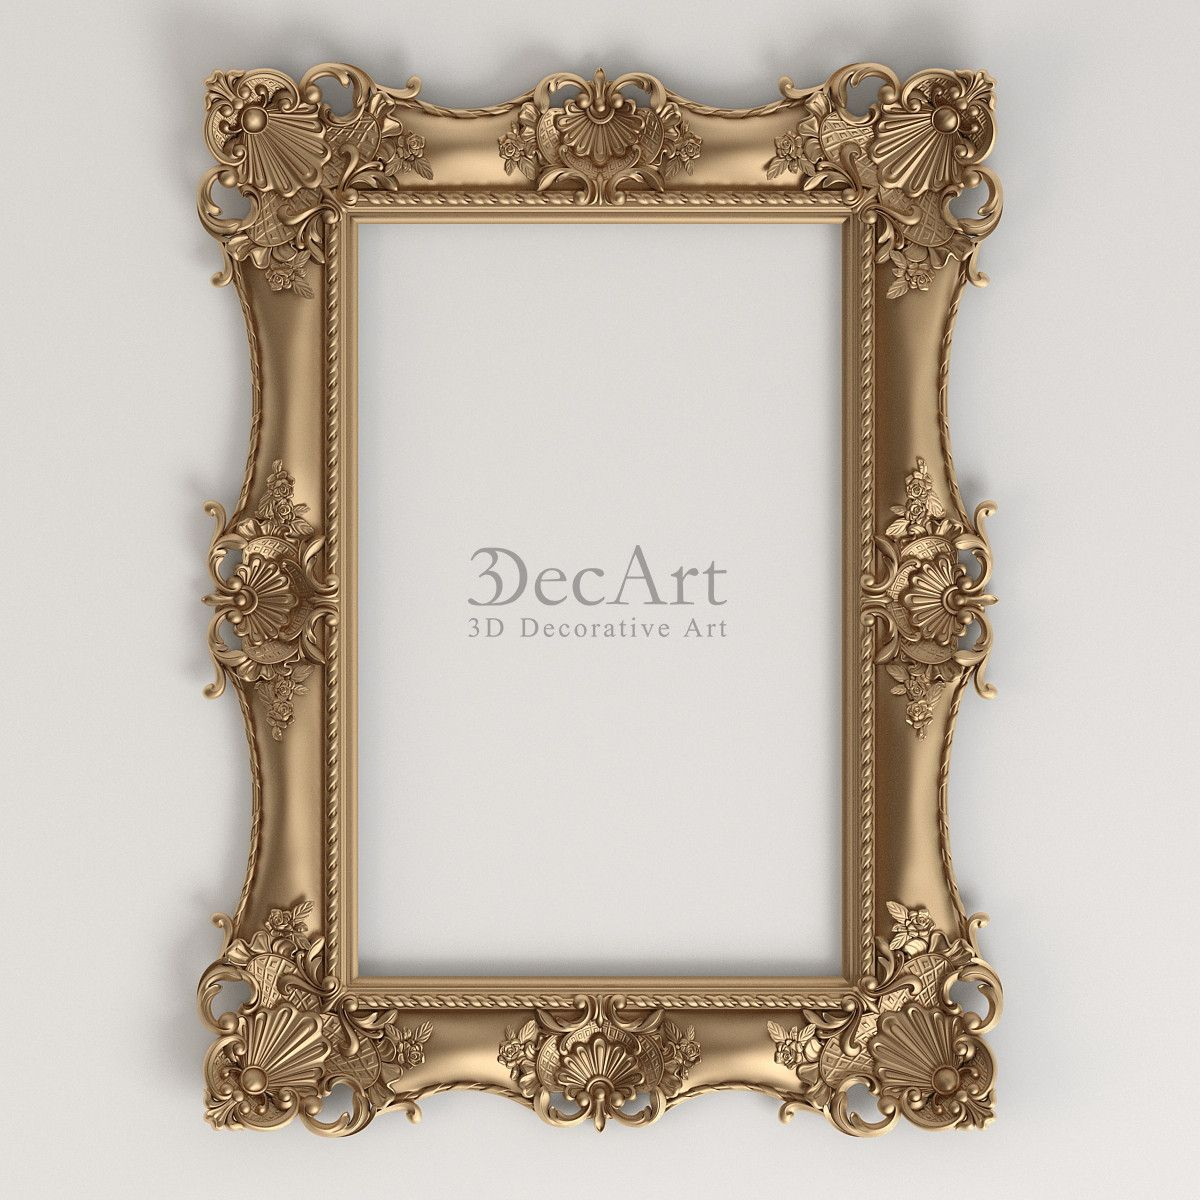 decorative frames 3d max | c4d art in 2018 | Pinterest | Decorative ...